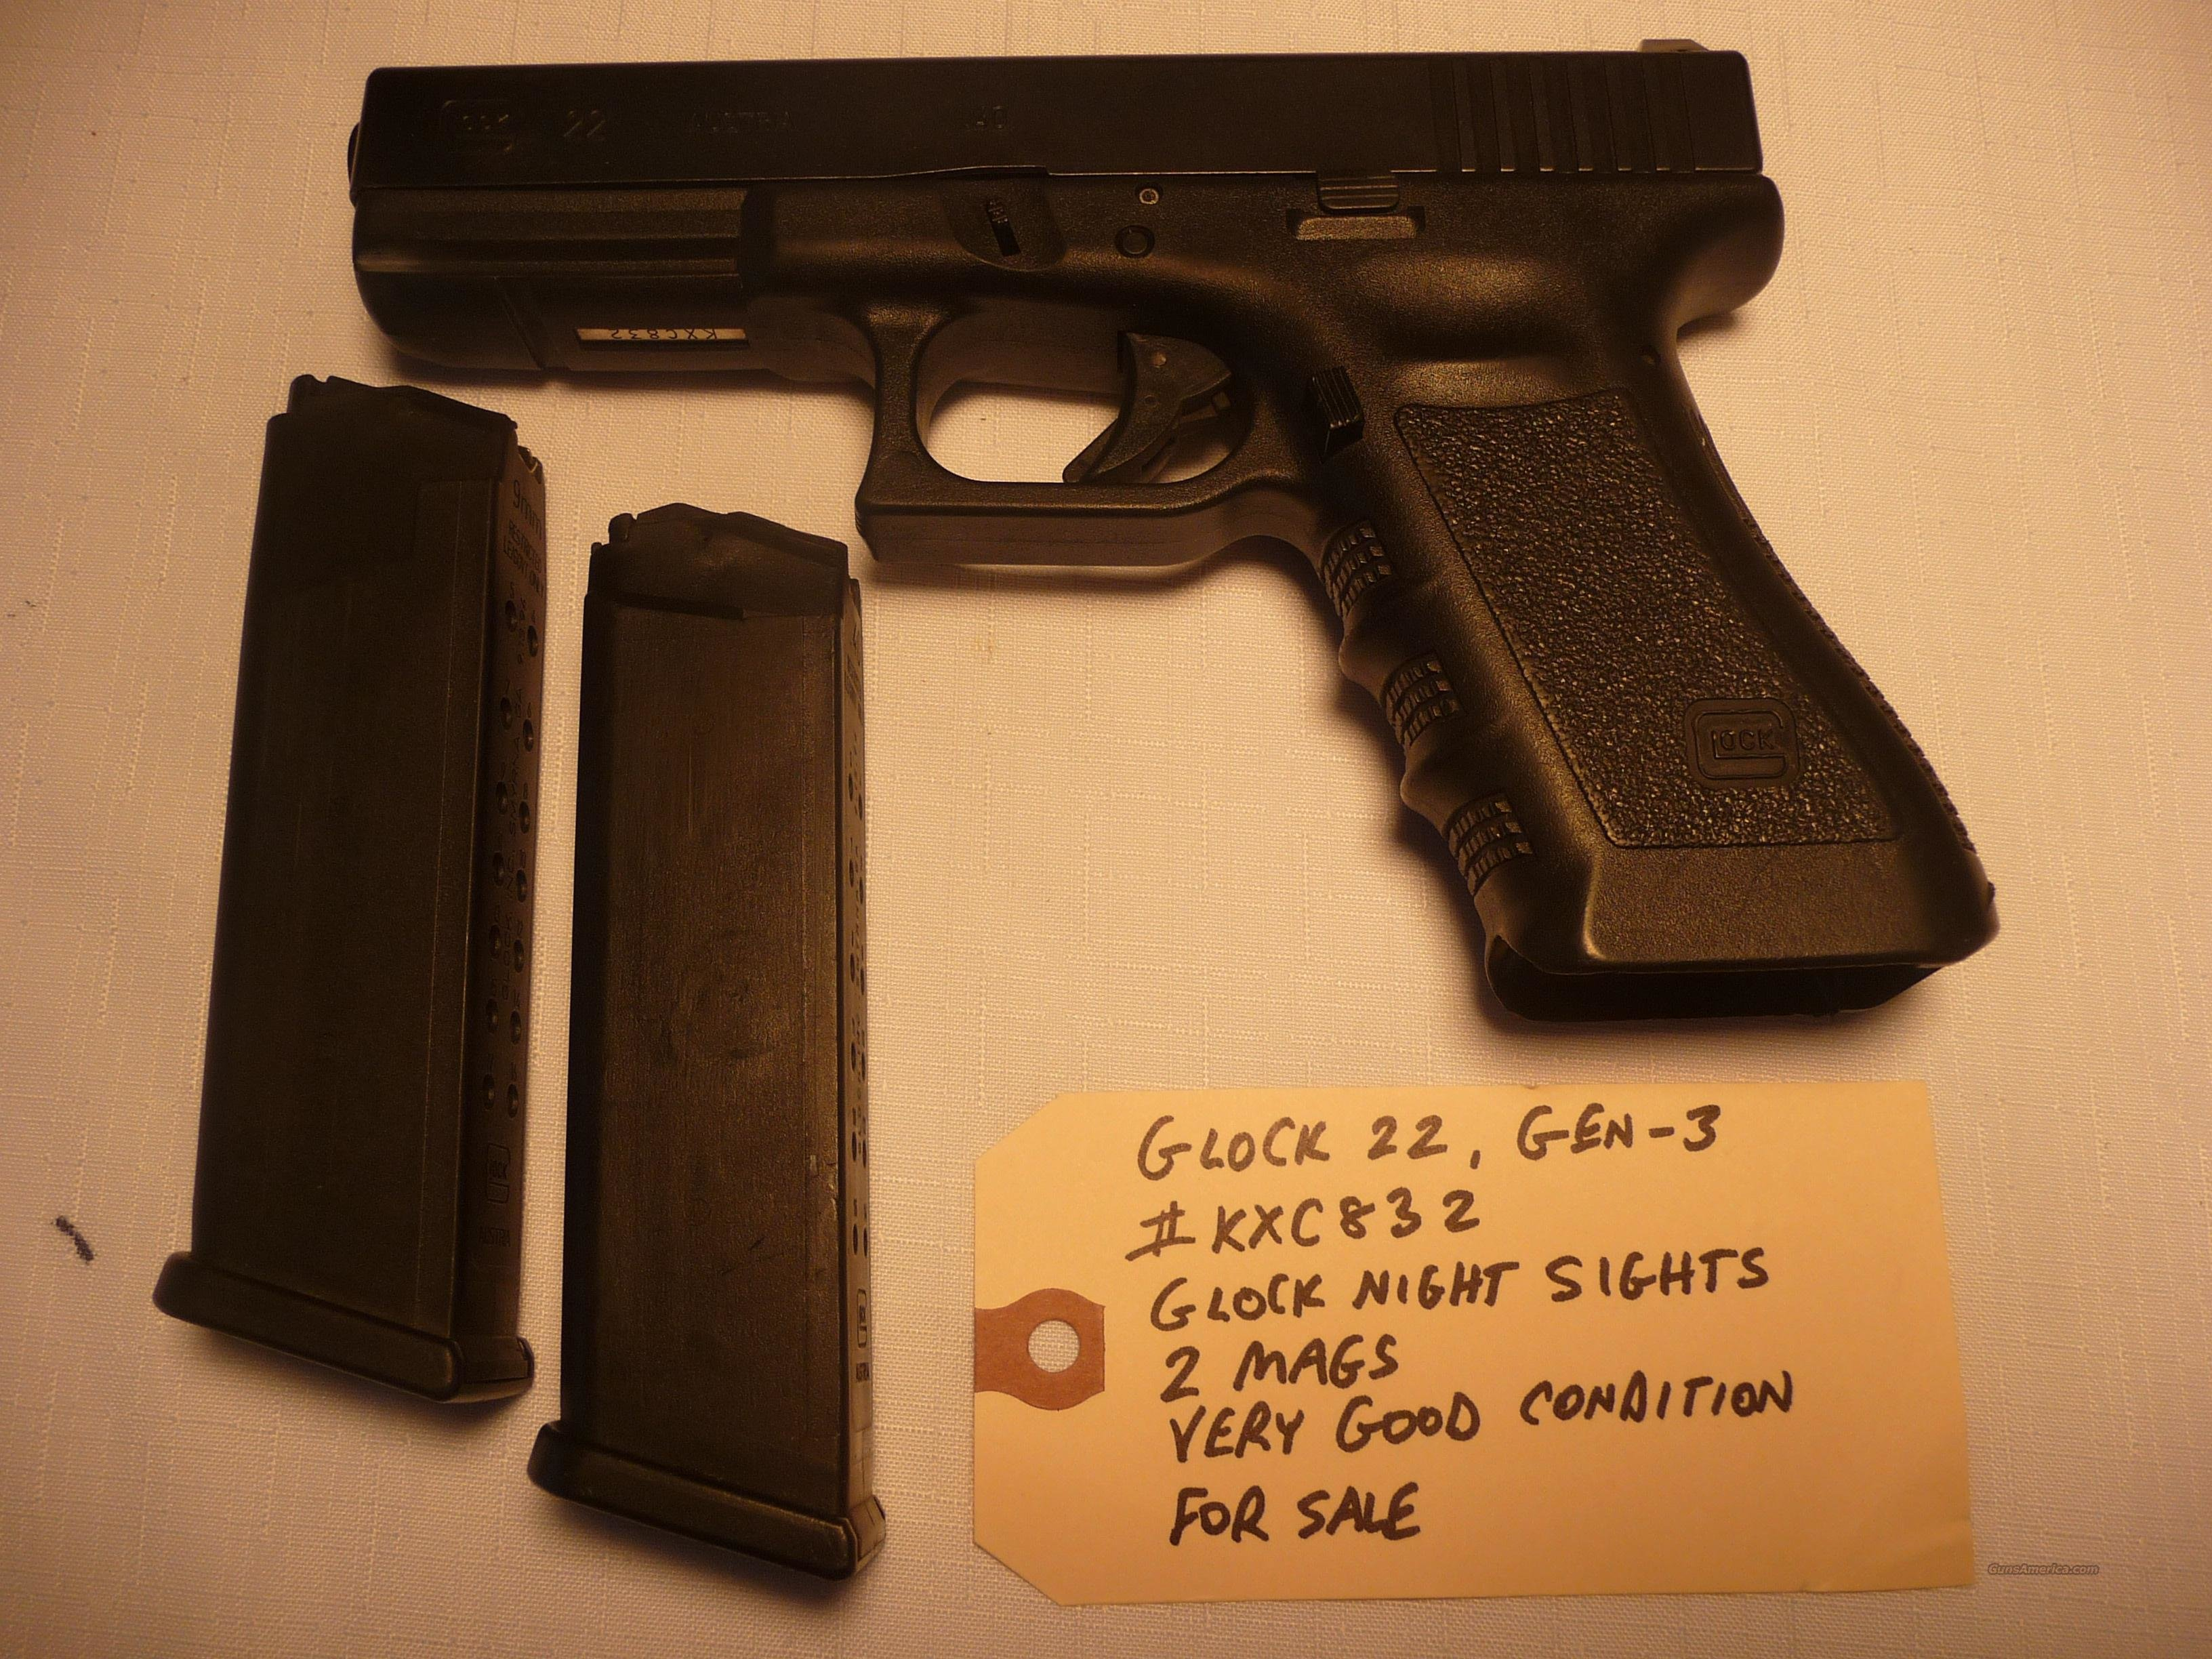 Used GLOCK-22 with 2 HI-CAP MAGS, Police Trade-In, .40 Pistol  Guns > Pistols > Glock Pistols > 22